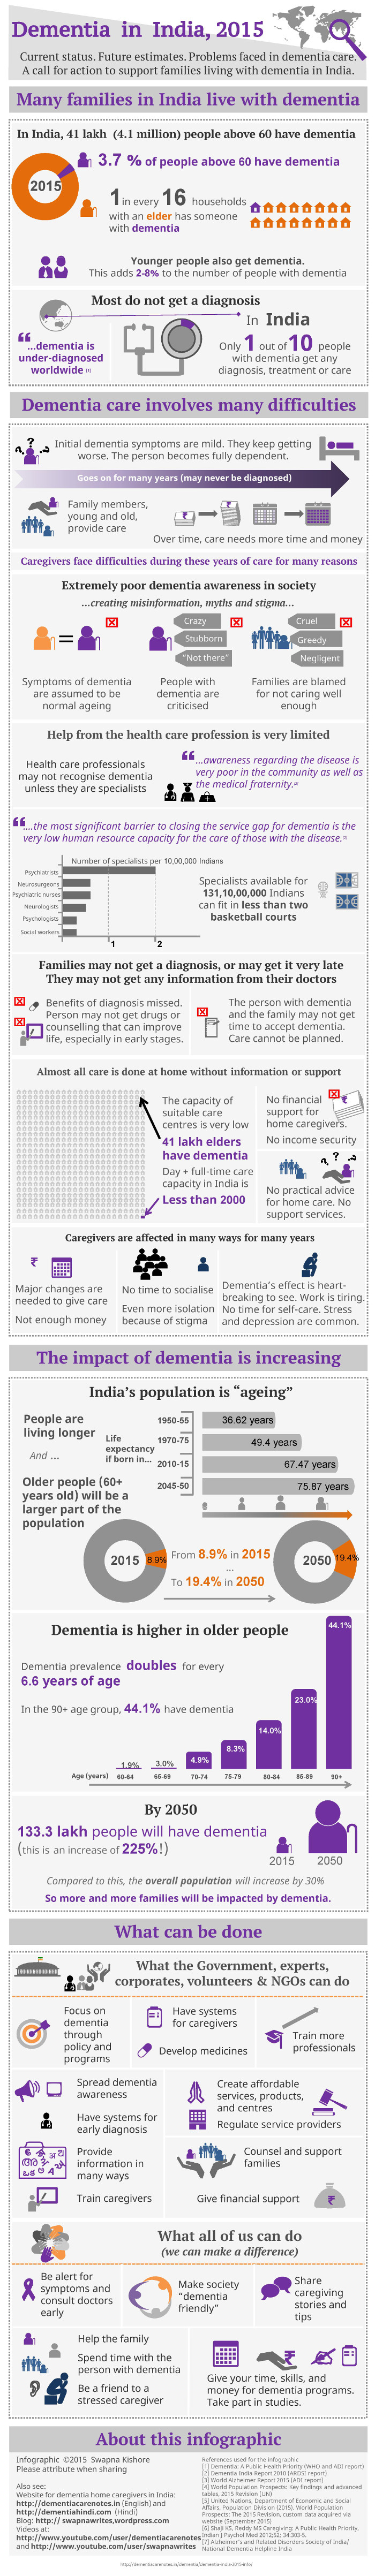 dementia in india, 2015: an infographic